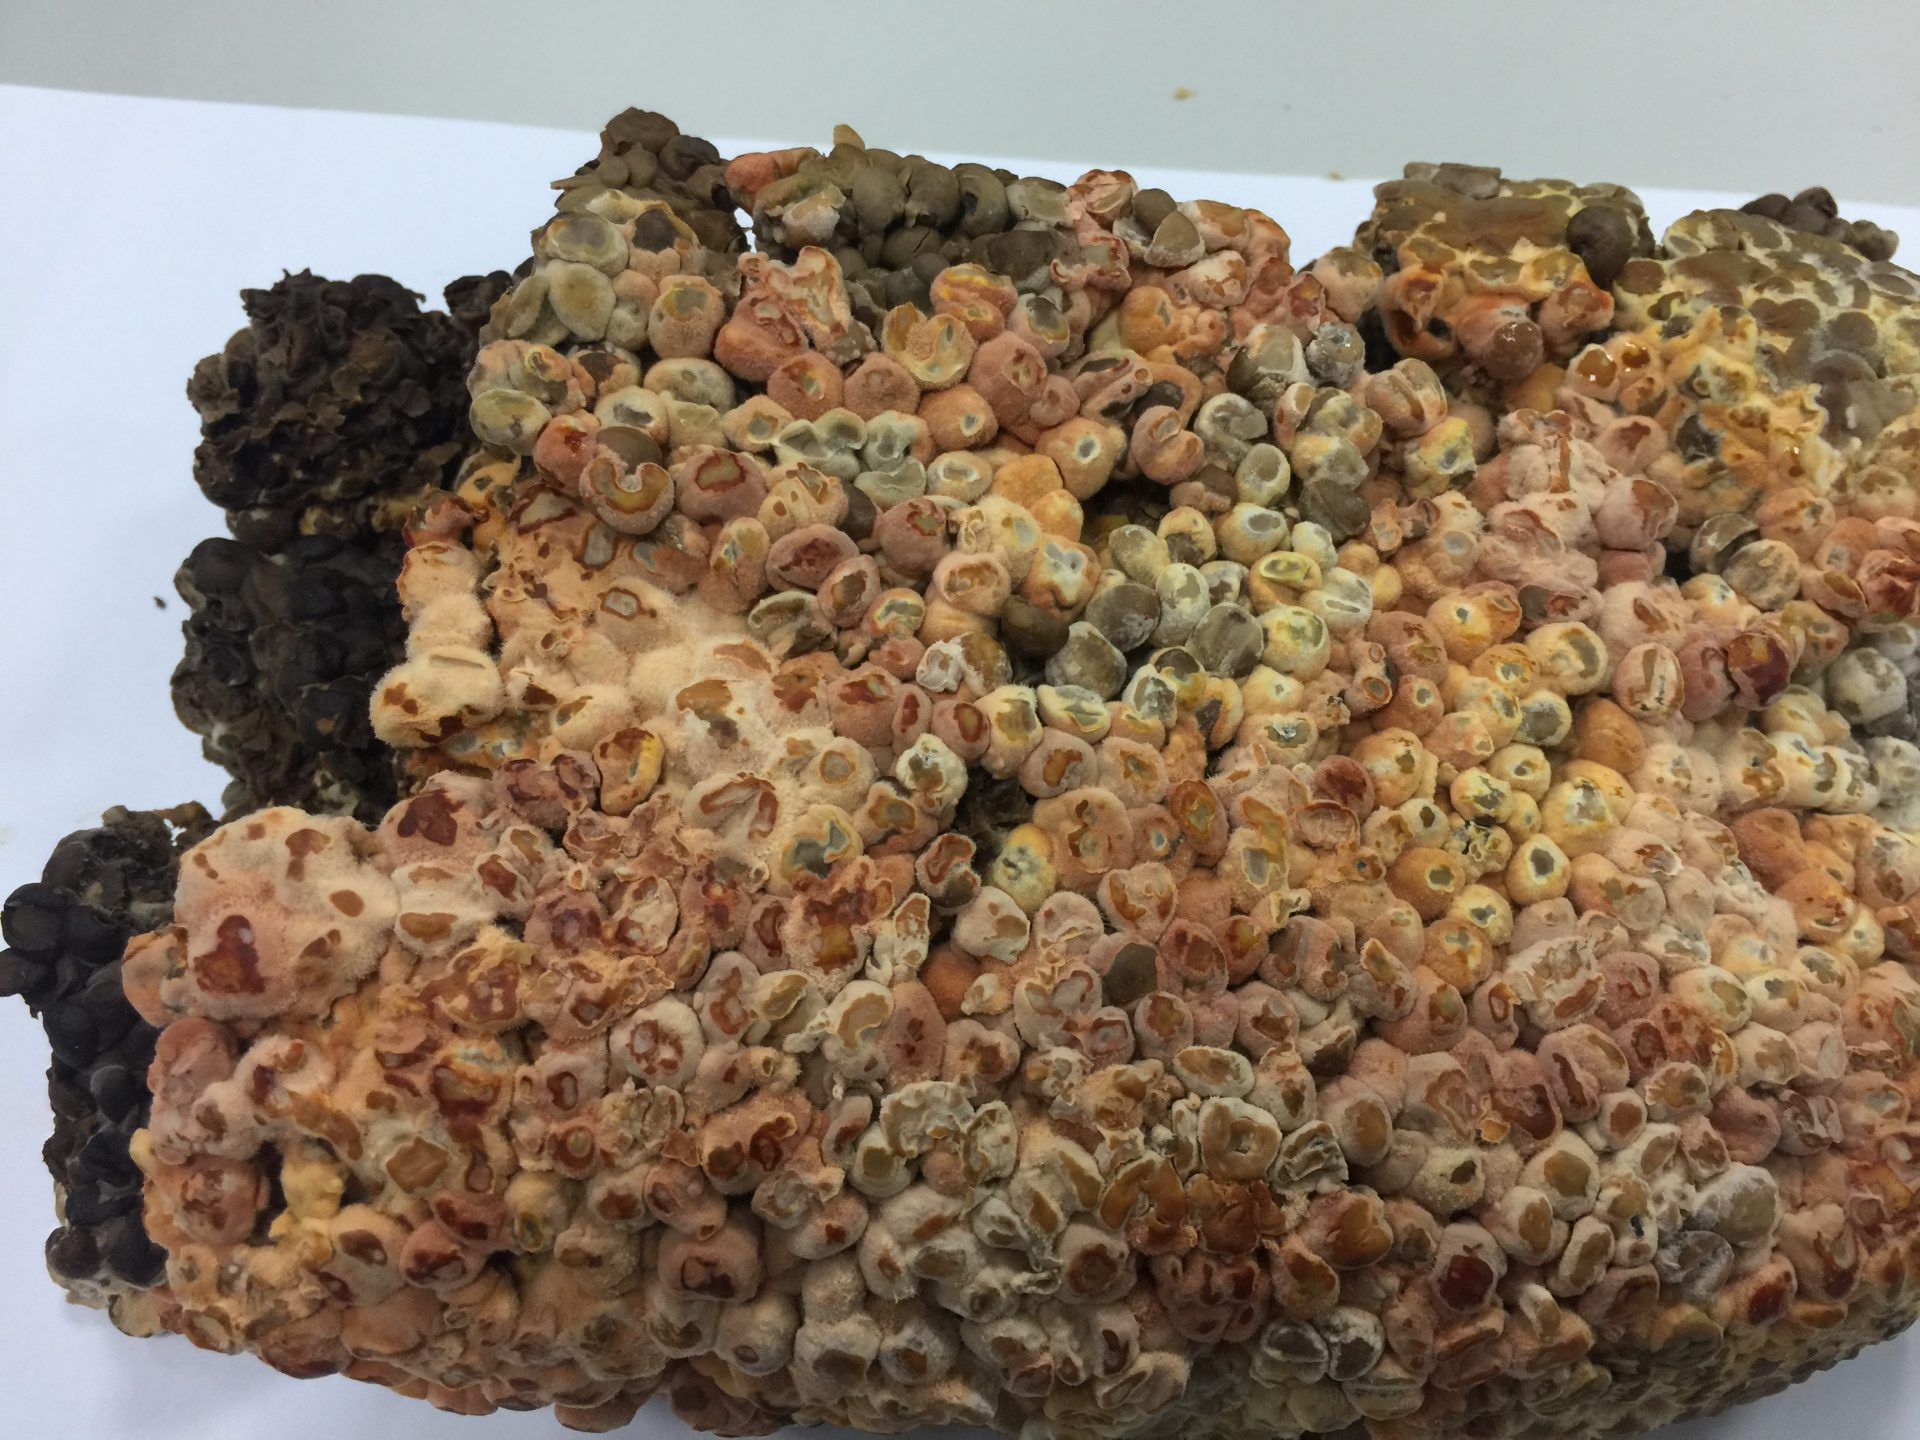 Niu Zhang Mushroom growth on solid culture (Image: Courtesy of 3i Agricultural BioTech Group)